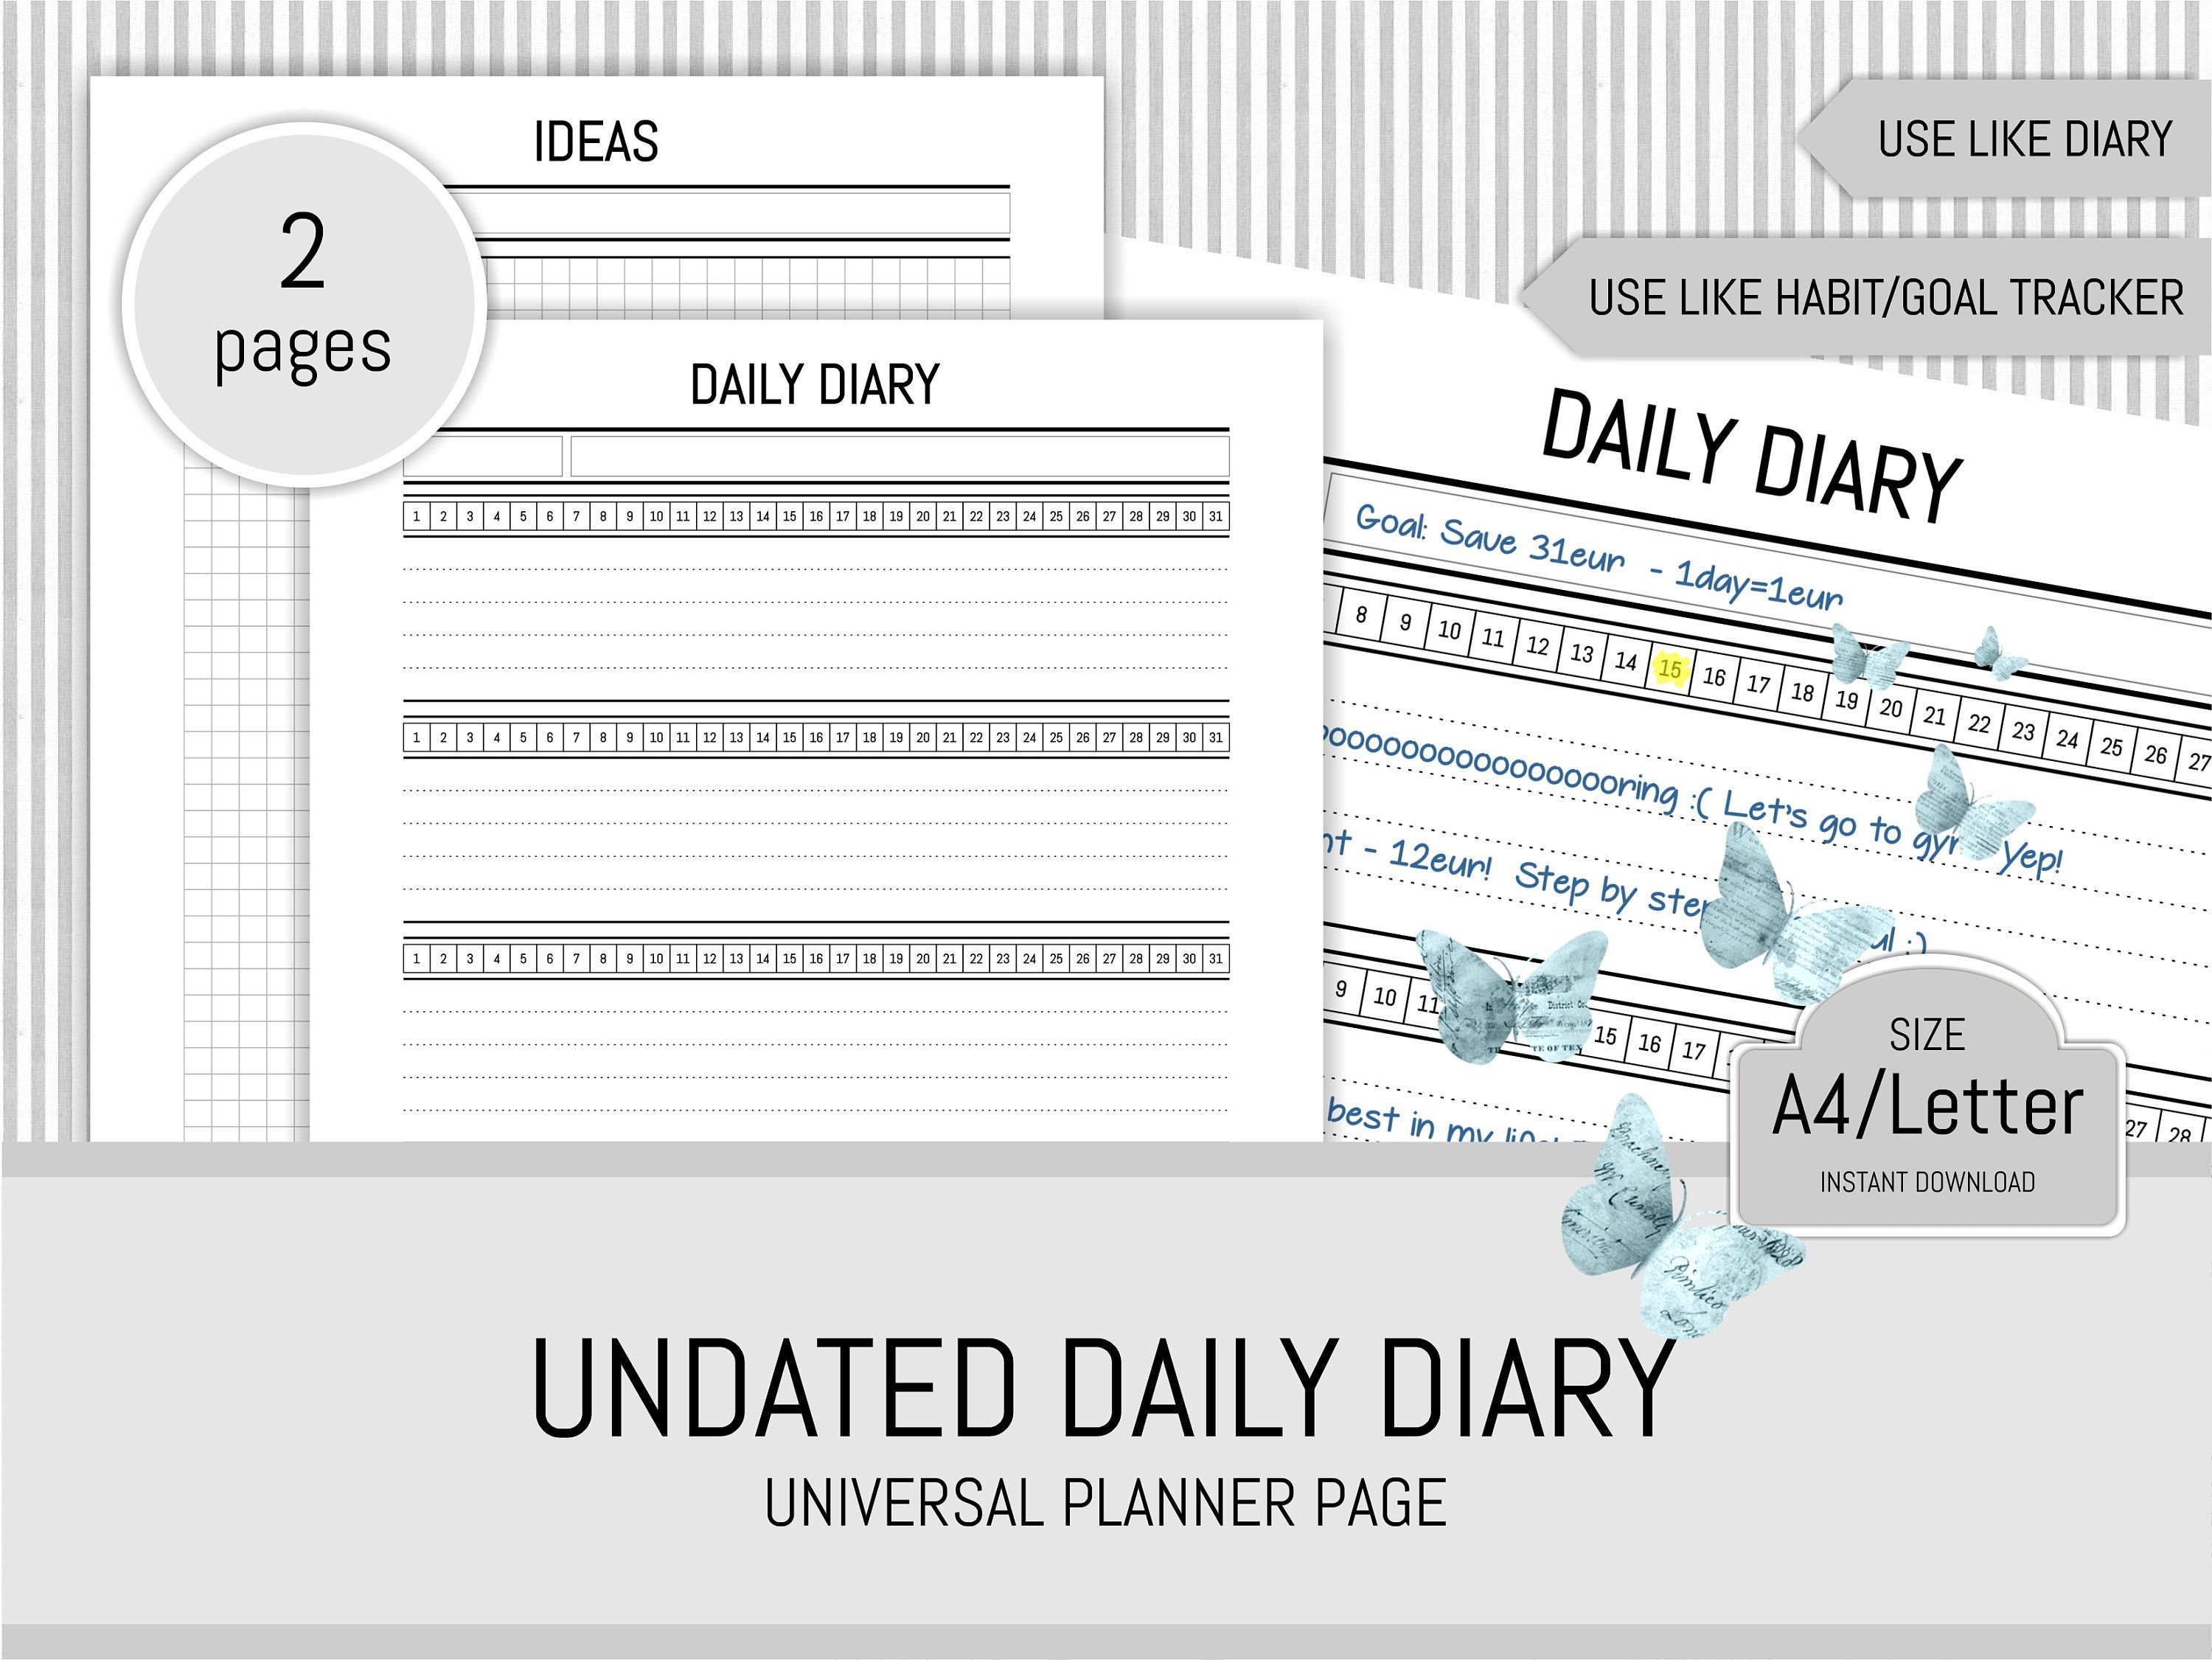 universal daily diary undated planner page printable ideas page